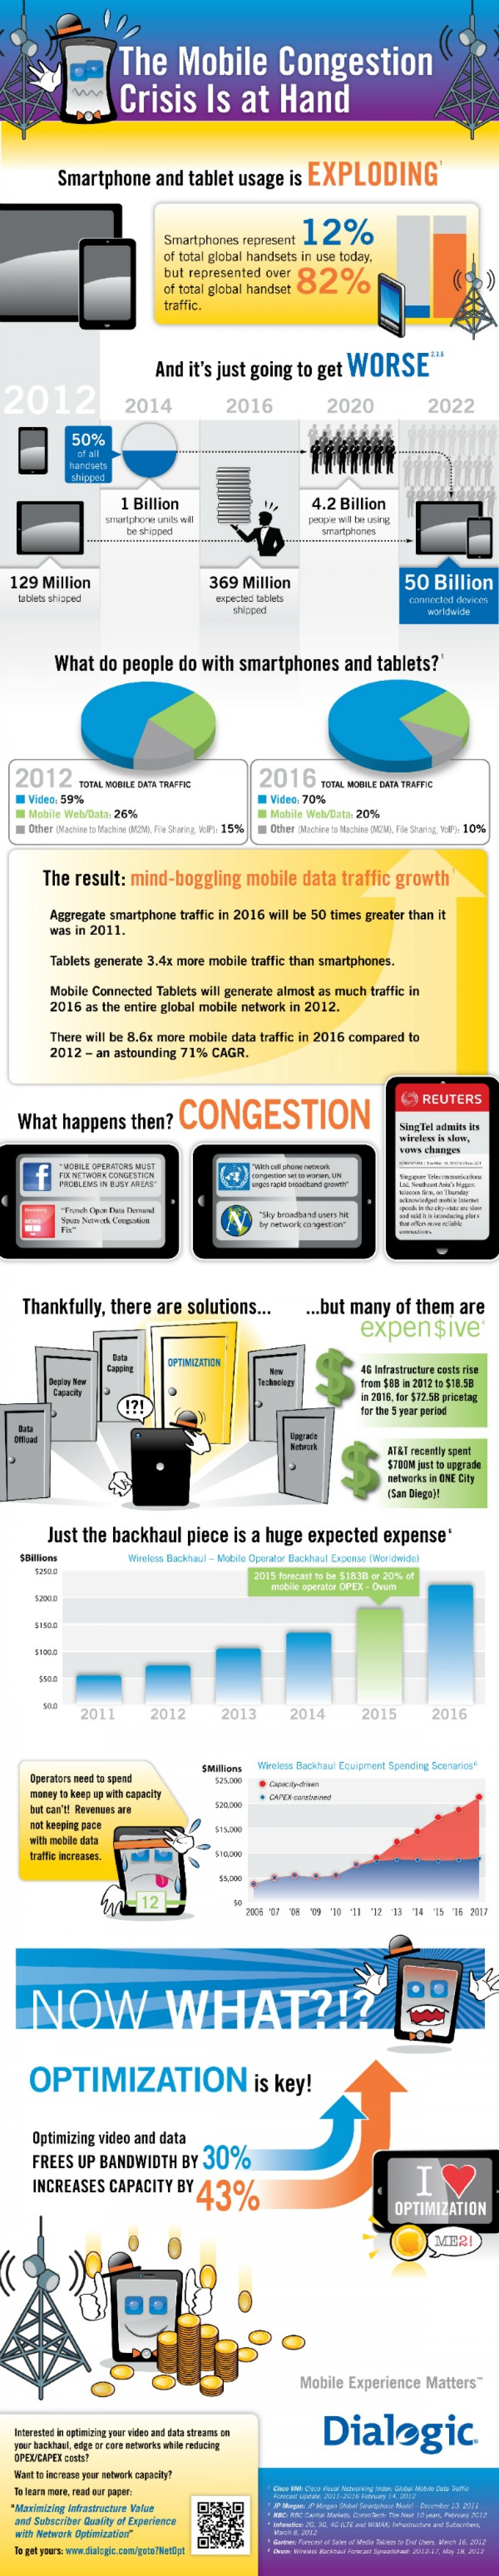 The Mobile Congestion Crisis is at Hand Infographic